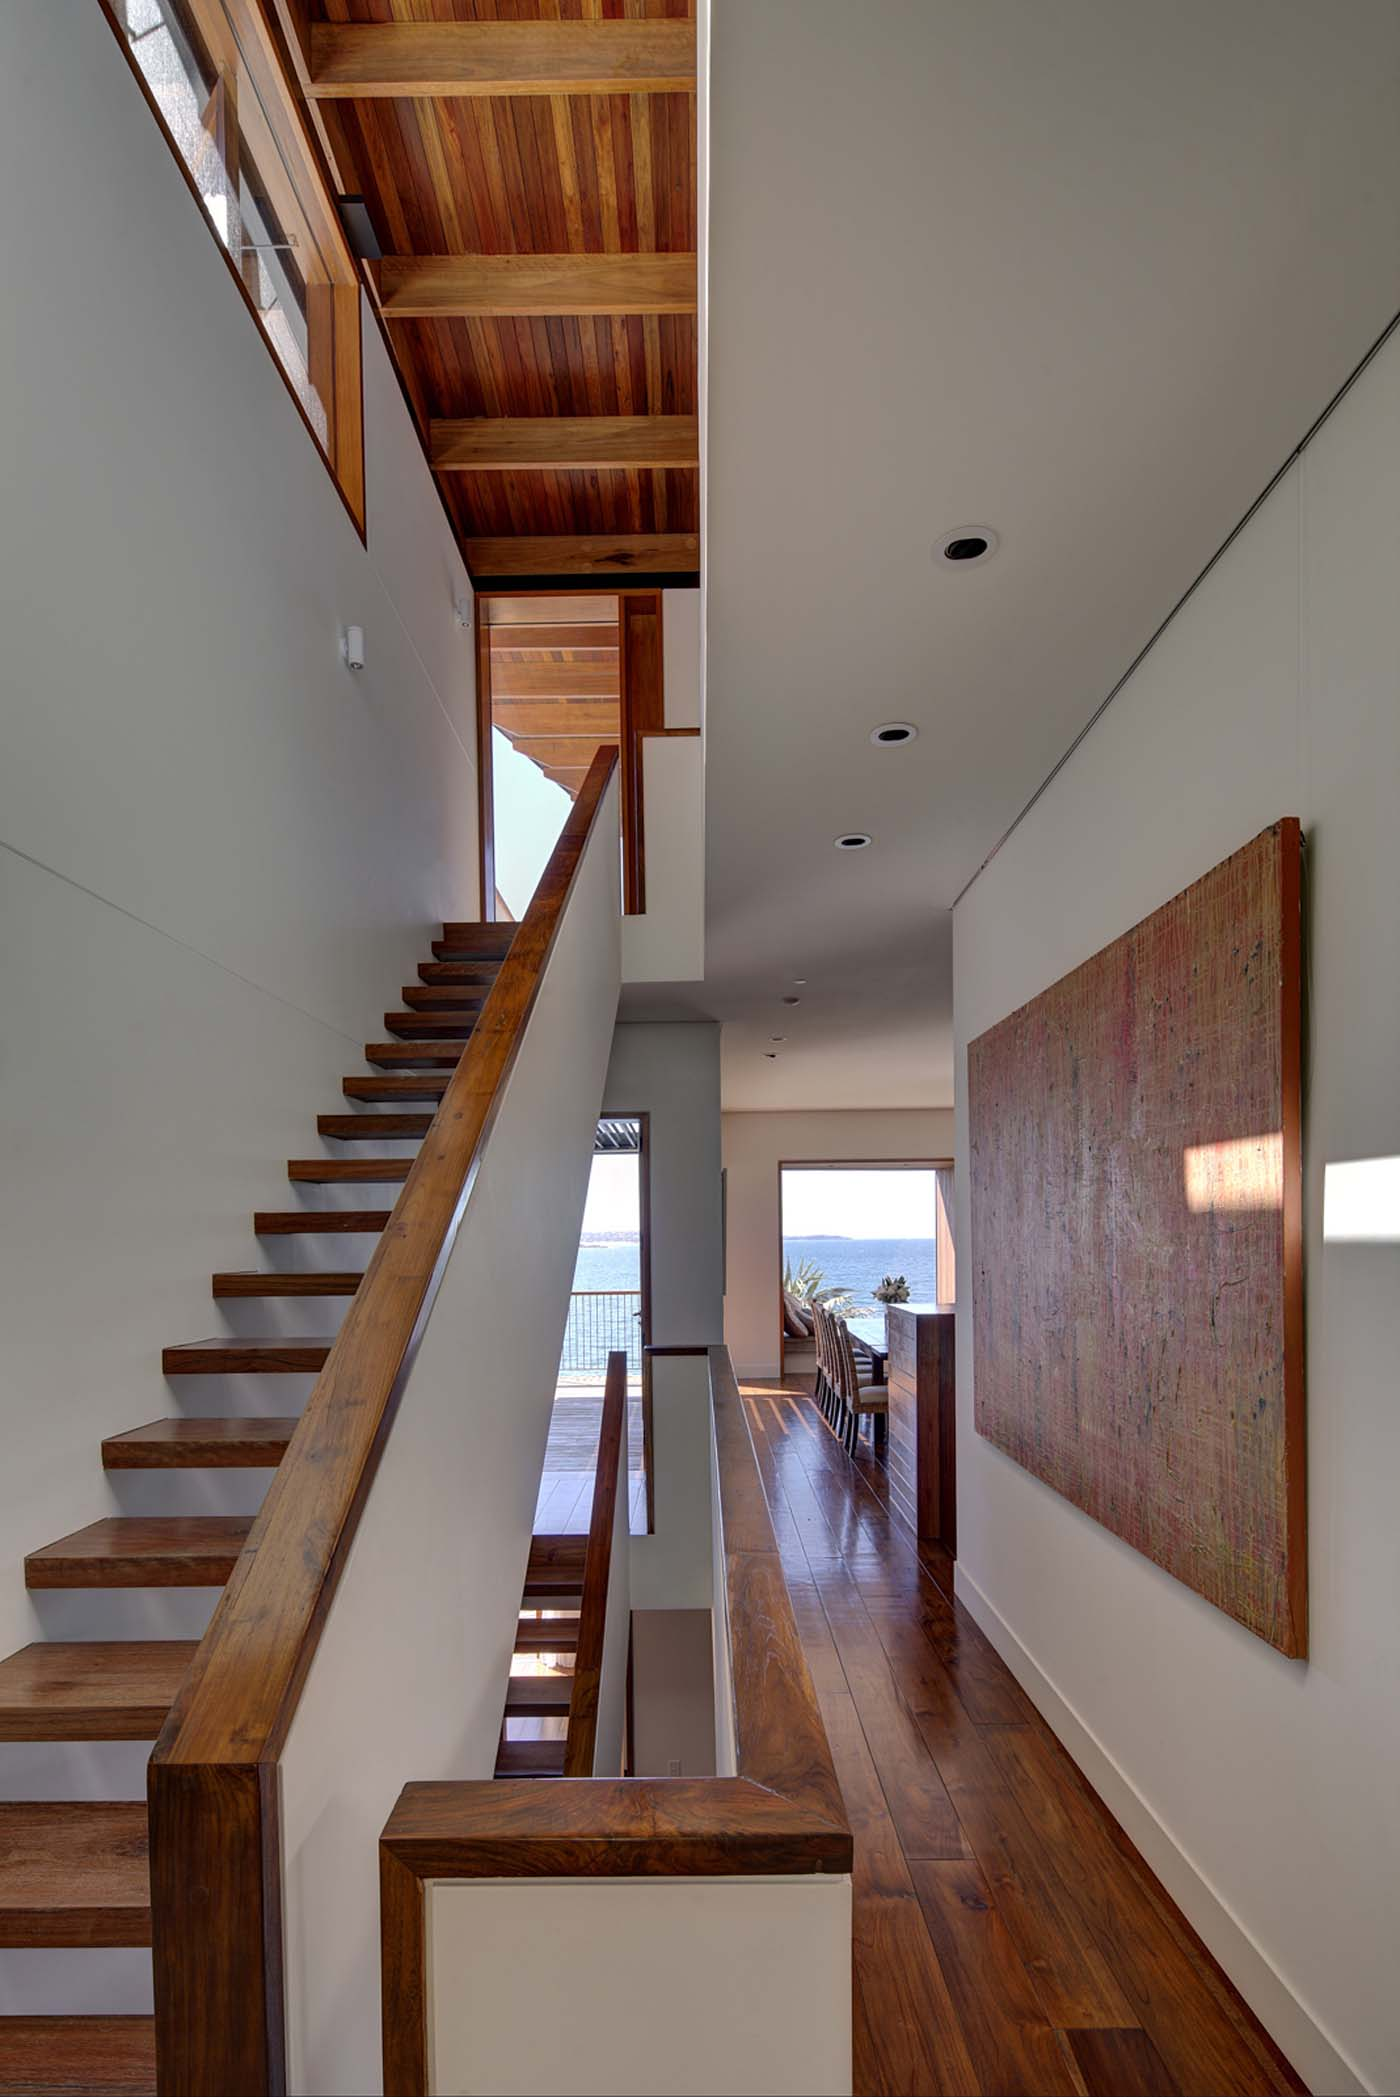 The Bower by Sam Crawford Architect, wooden interior of circulation spaces